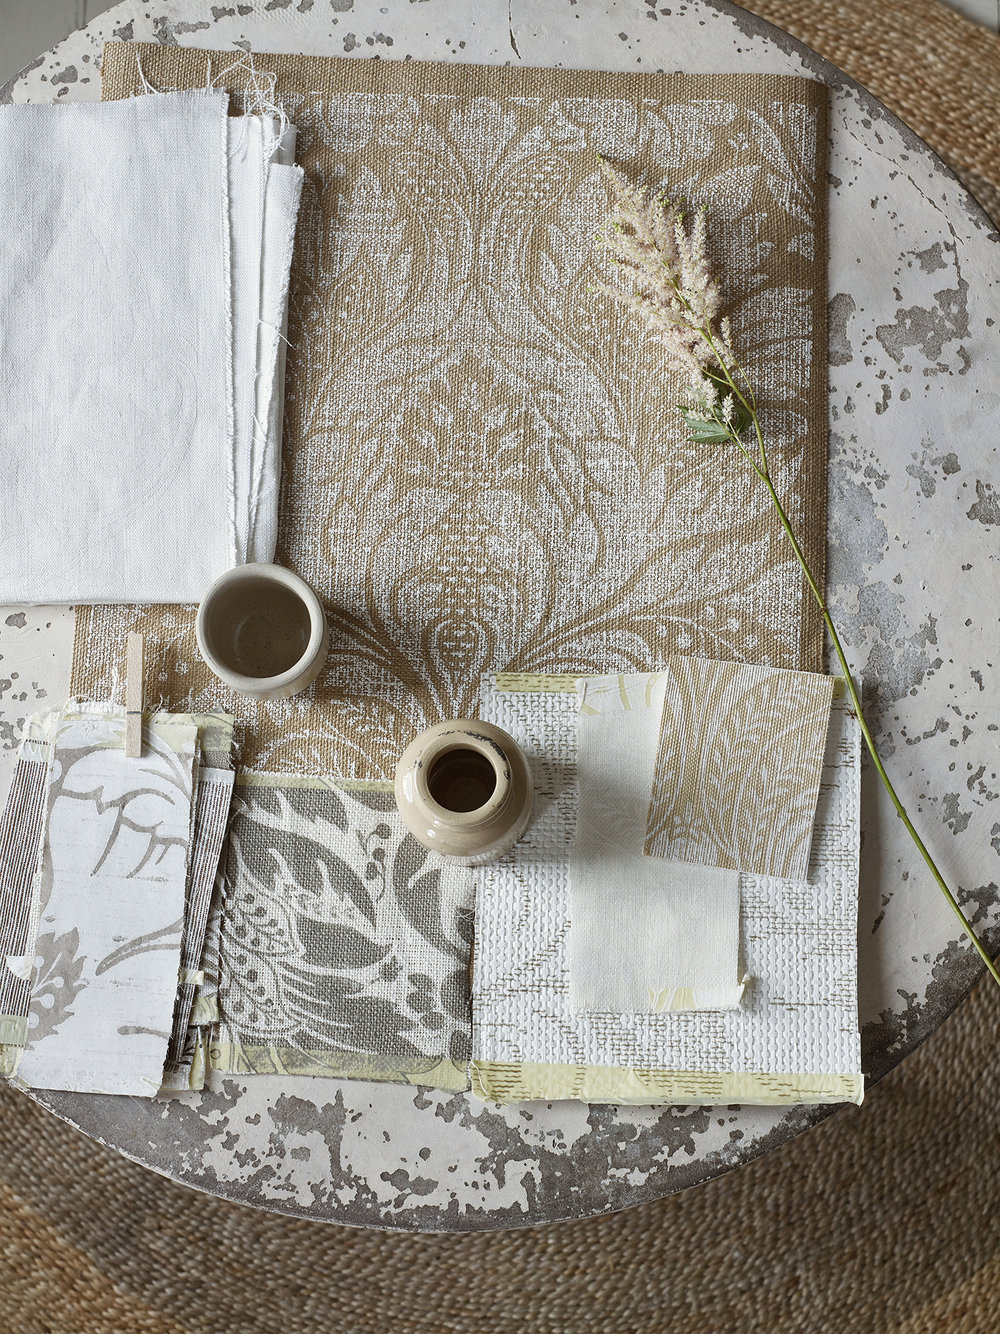 KENT_DAMASK_ARTWORK_007_R1.jpg